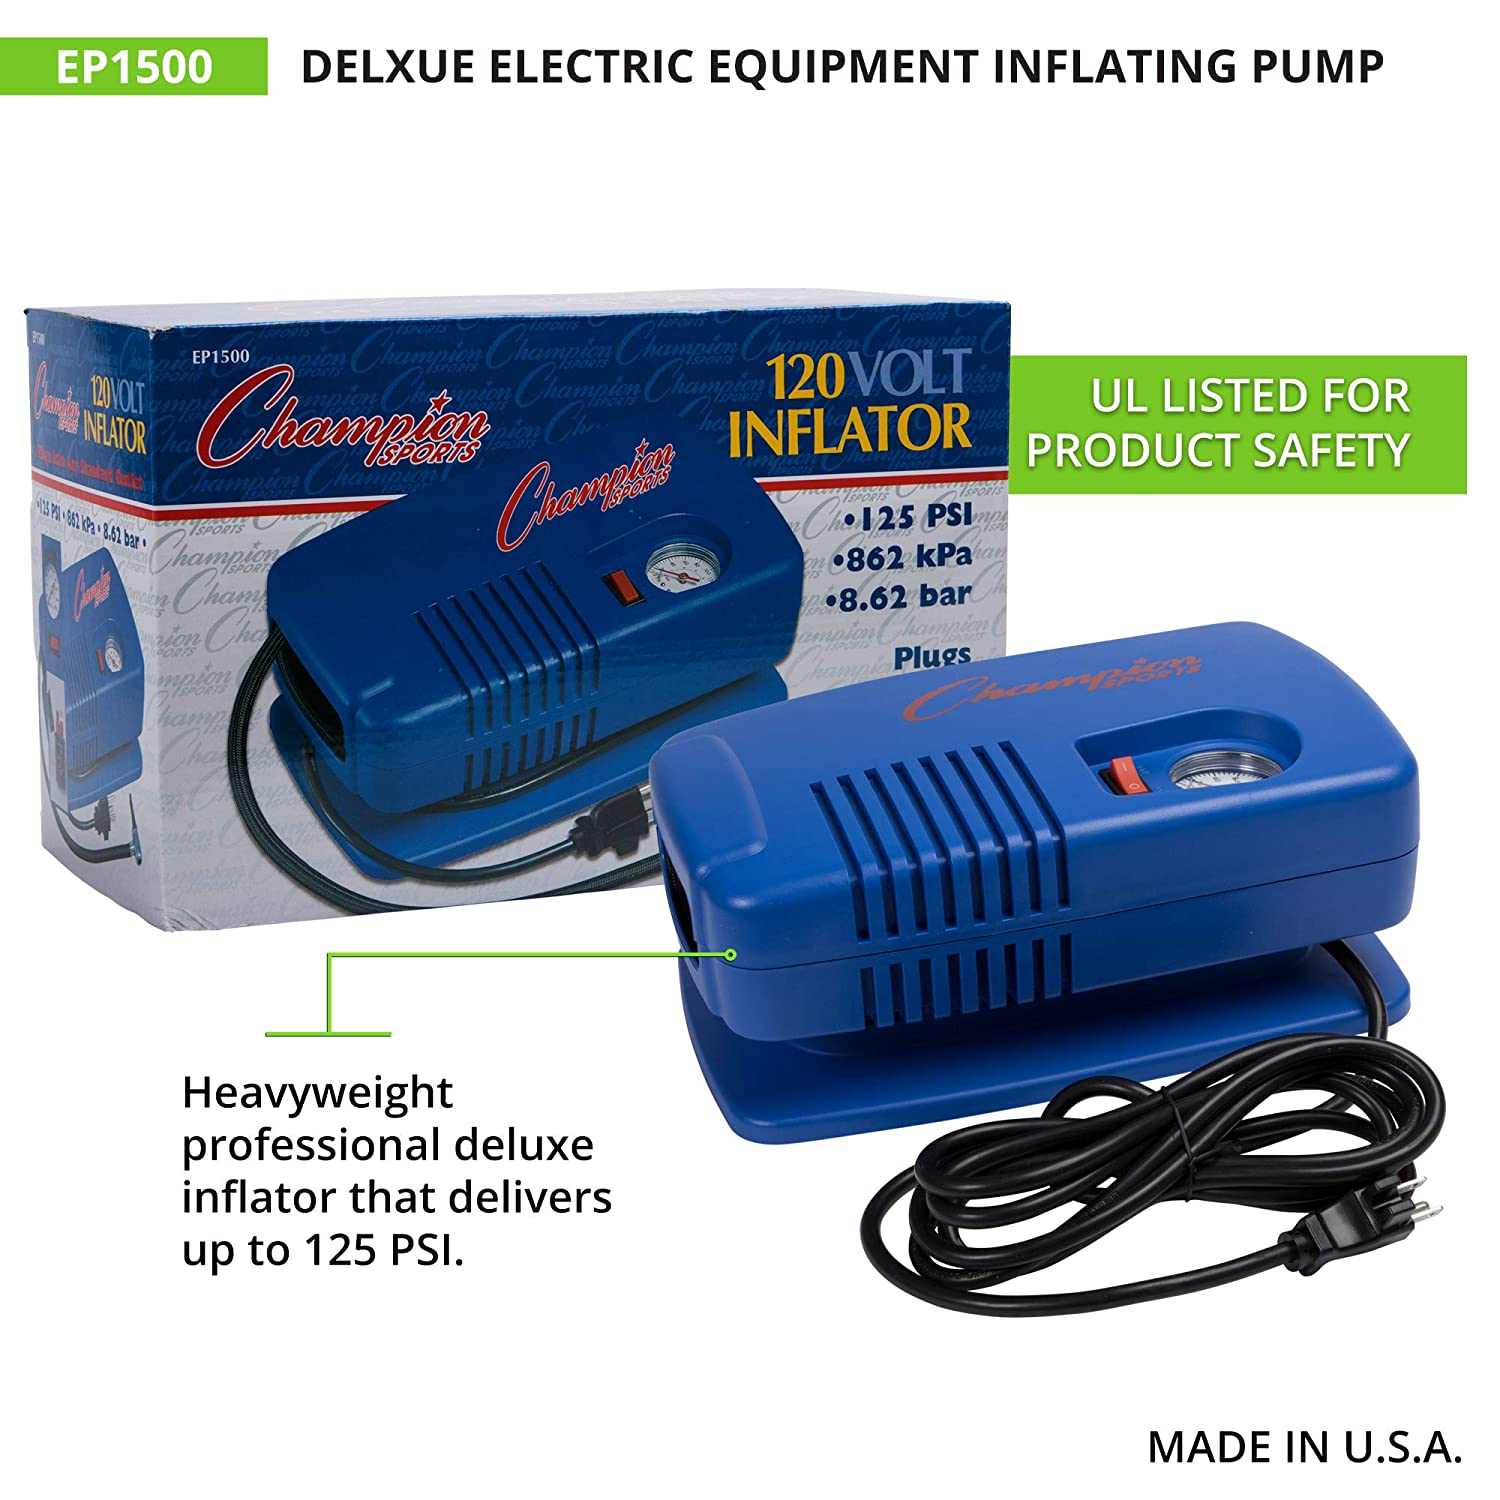 Champion Sports Deluxe Electric Equipment Inflating Air Pump EP1500